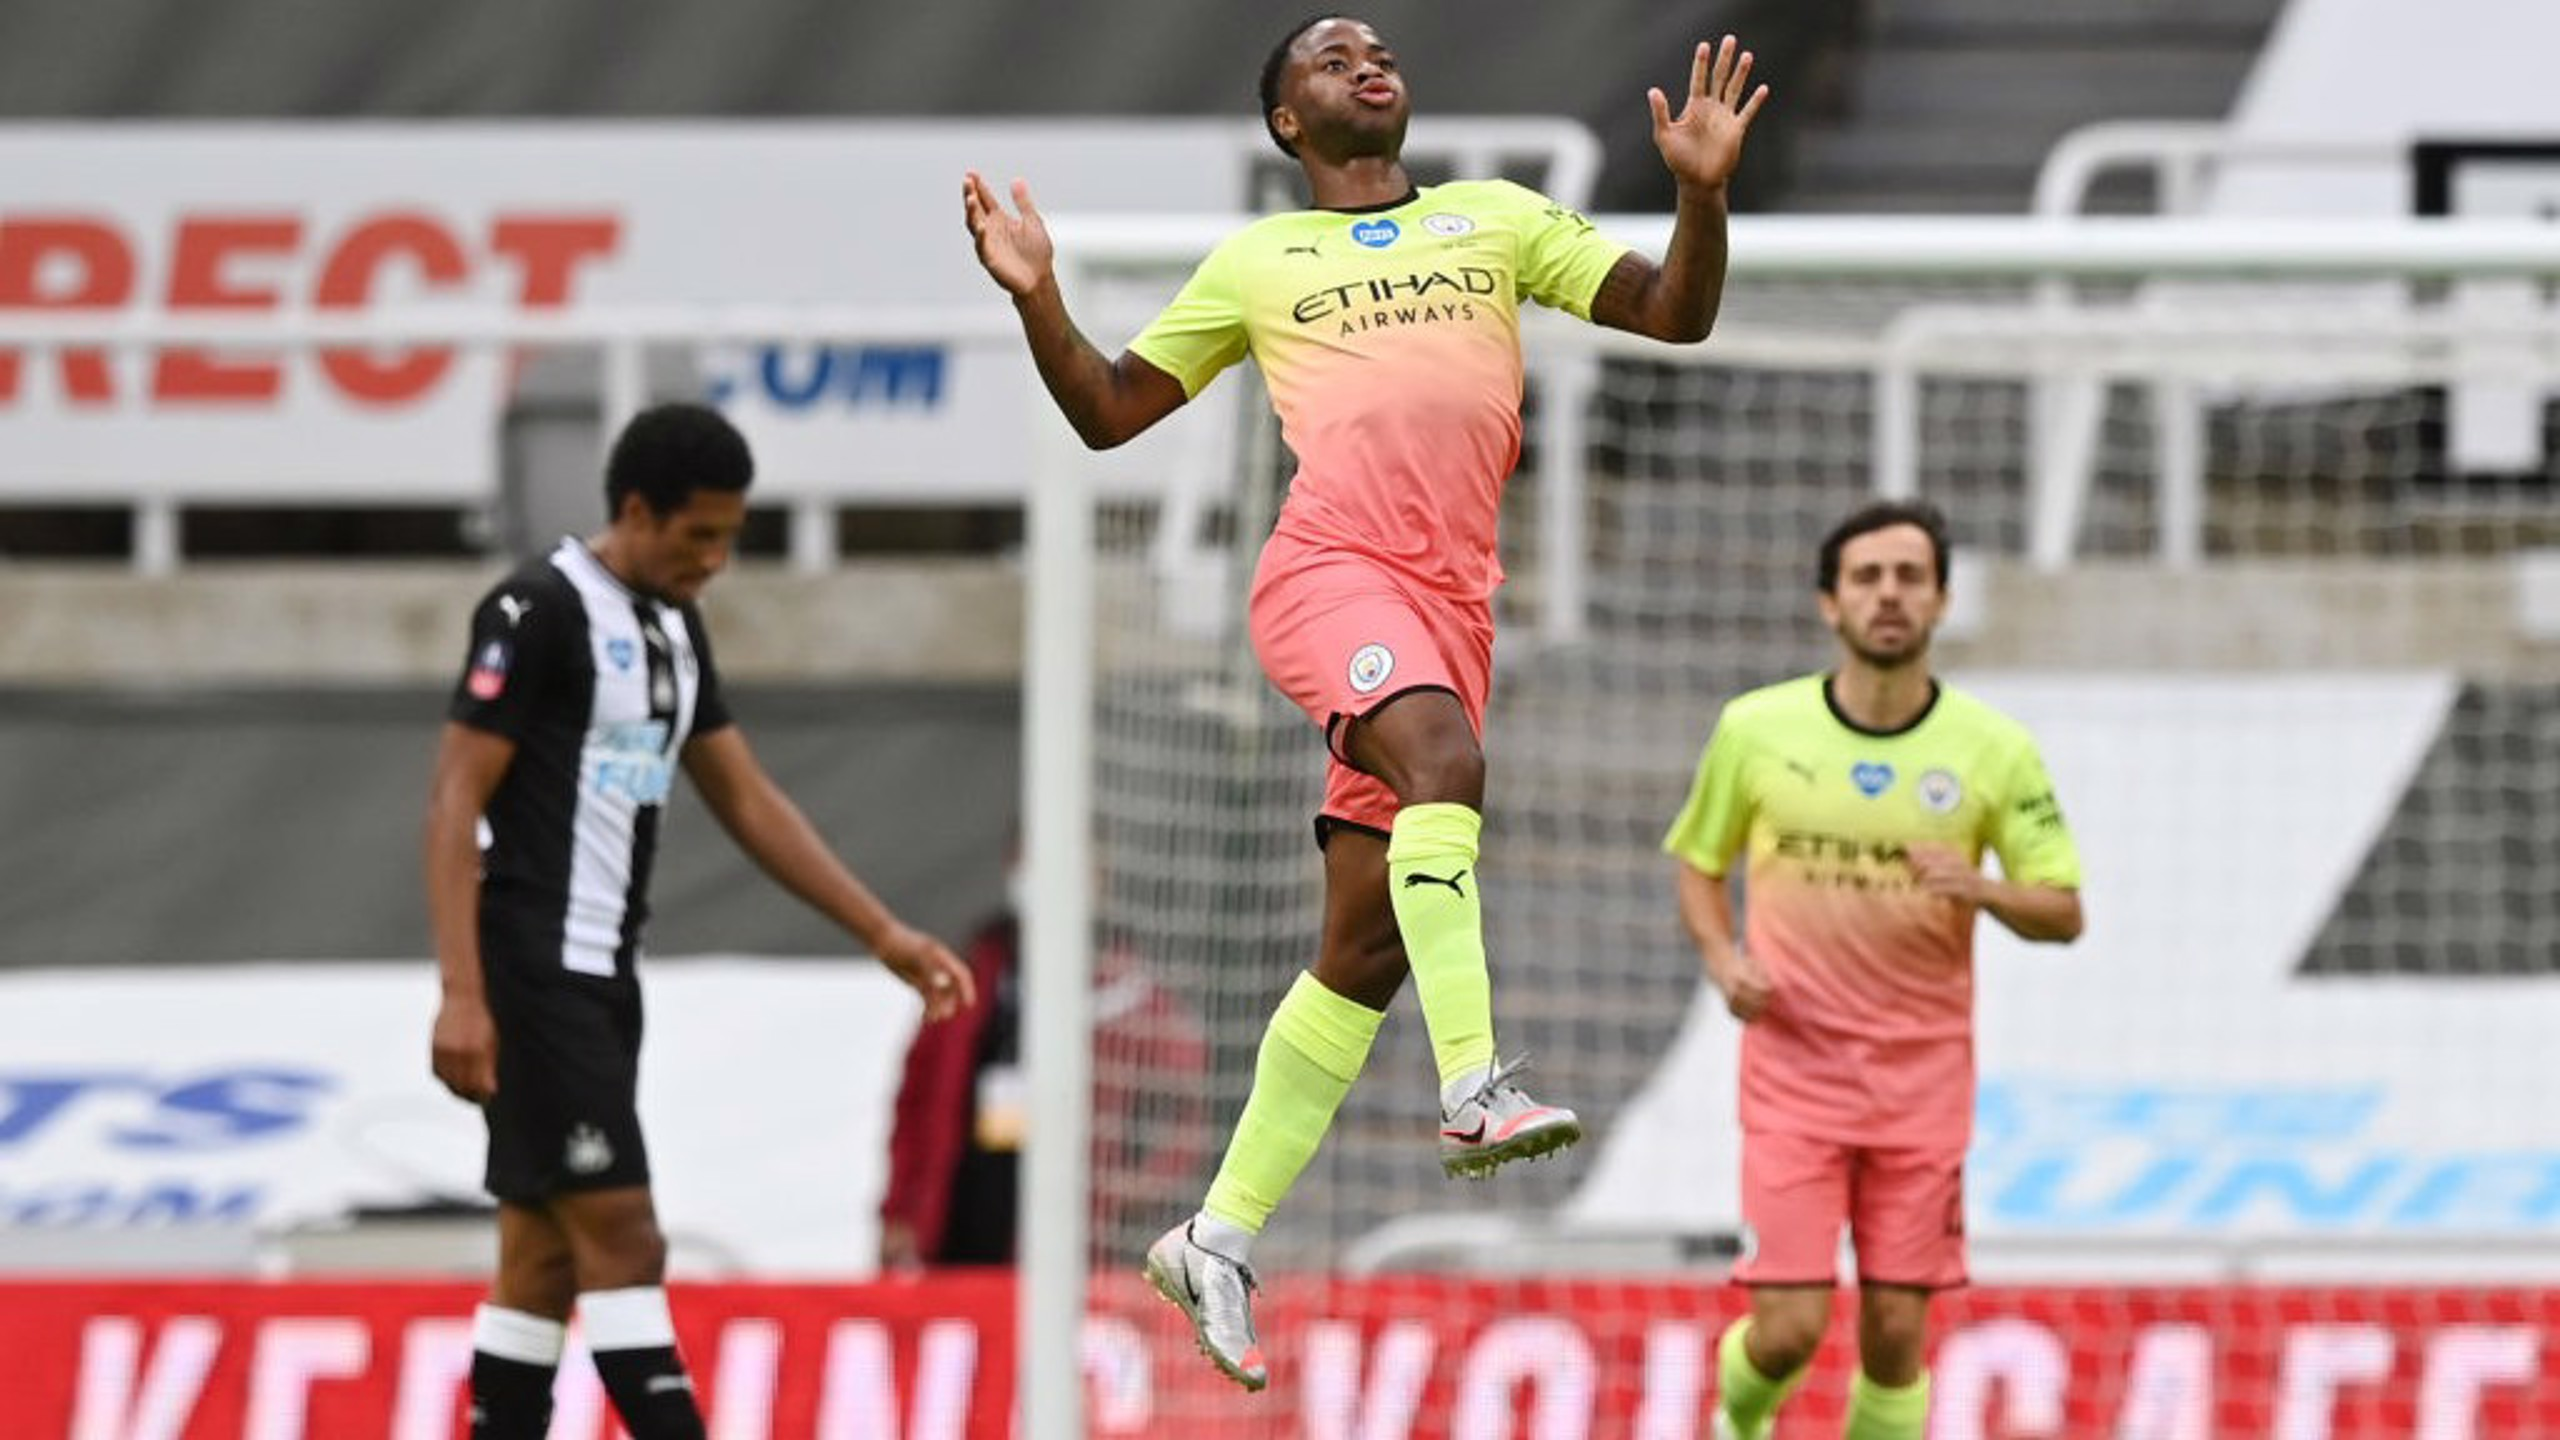 RAHEEM DREAM: Our winger celebrates in style!